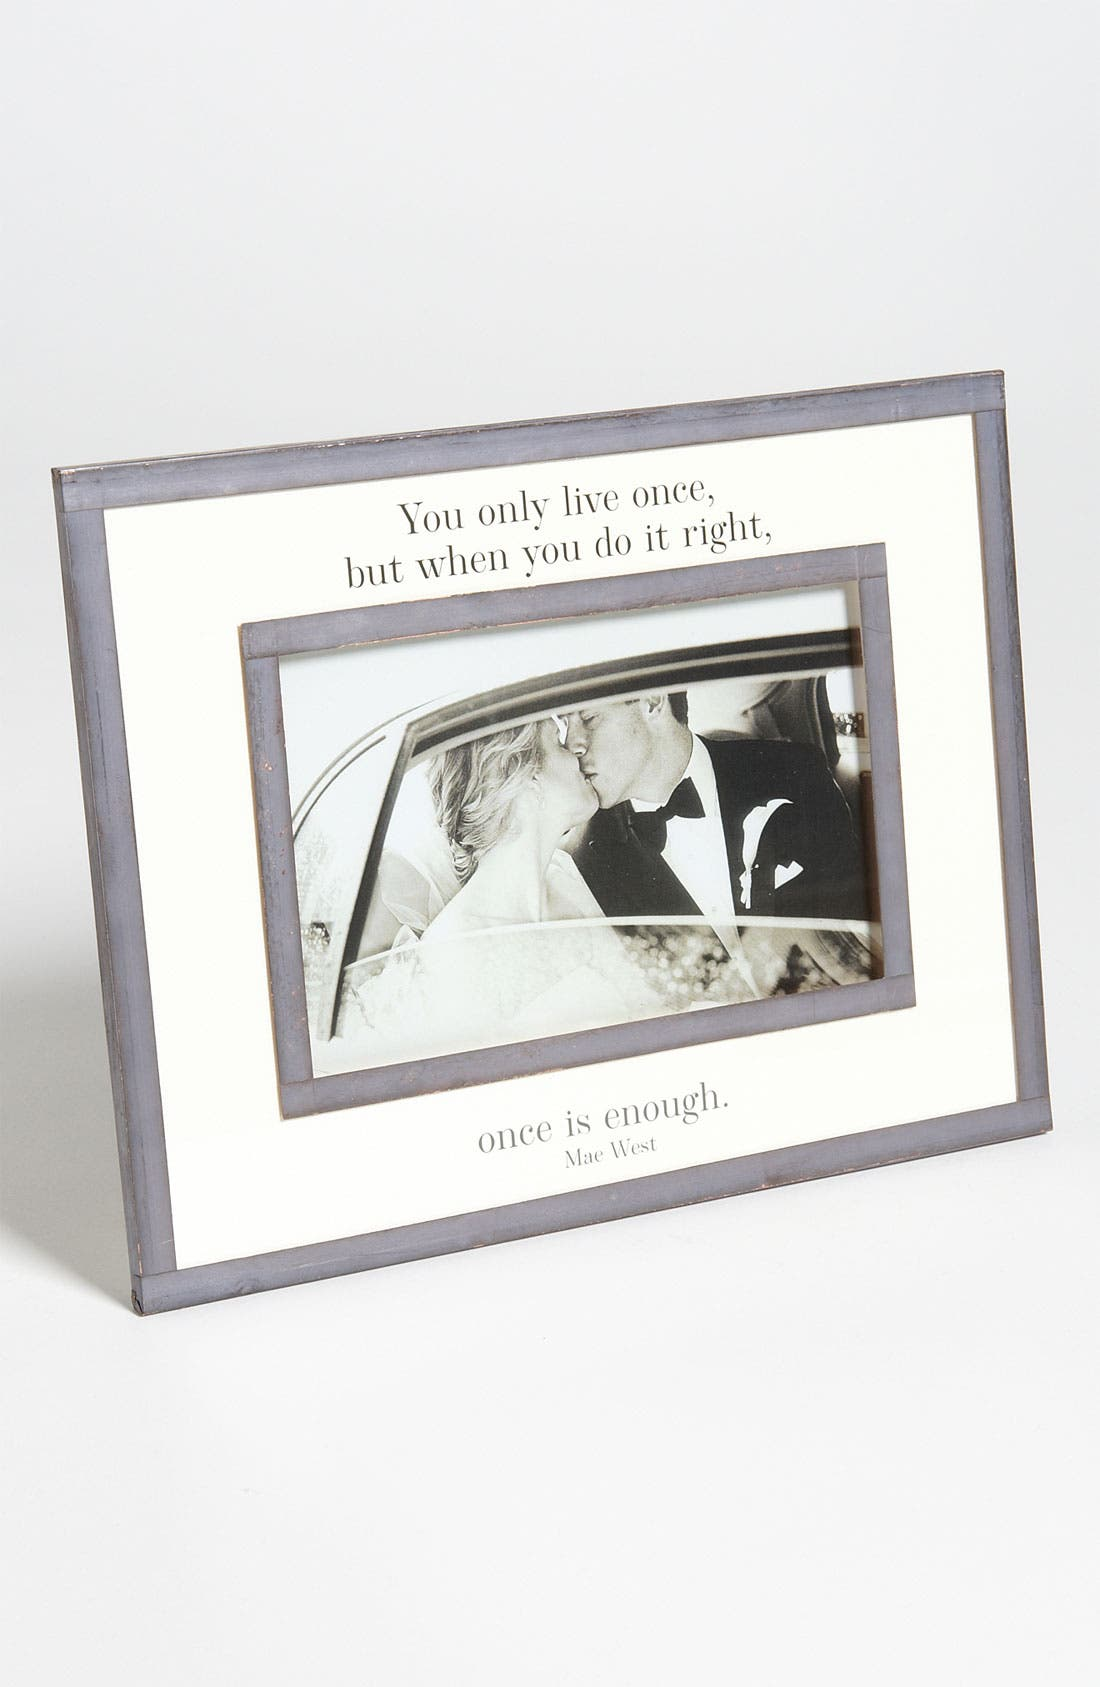 Alternate Image 1 Selected - Ben's Garden 'You Only Live Once' Picture Frame (4x6)